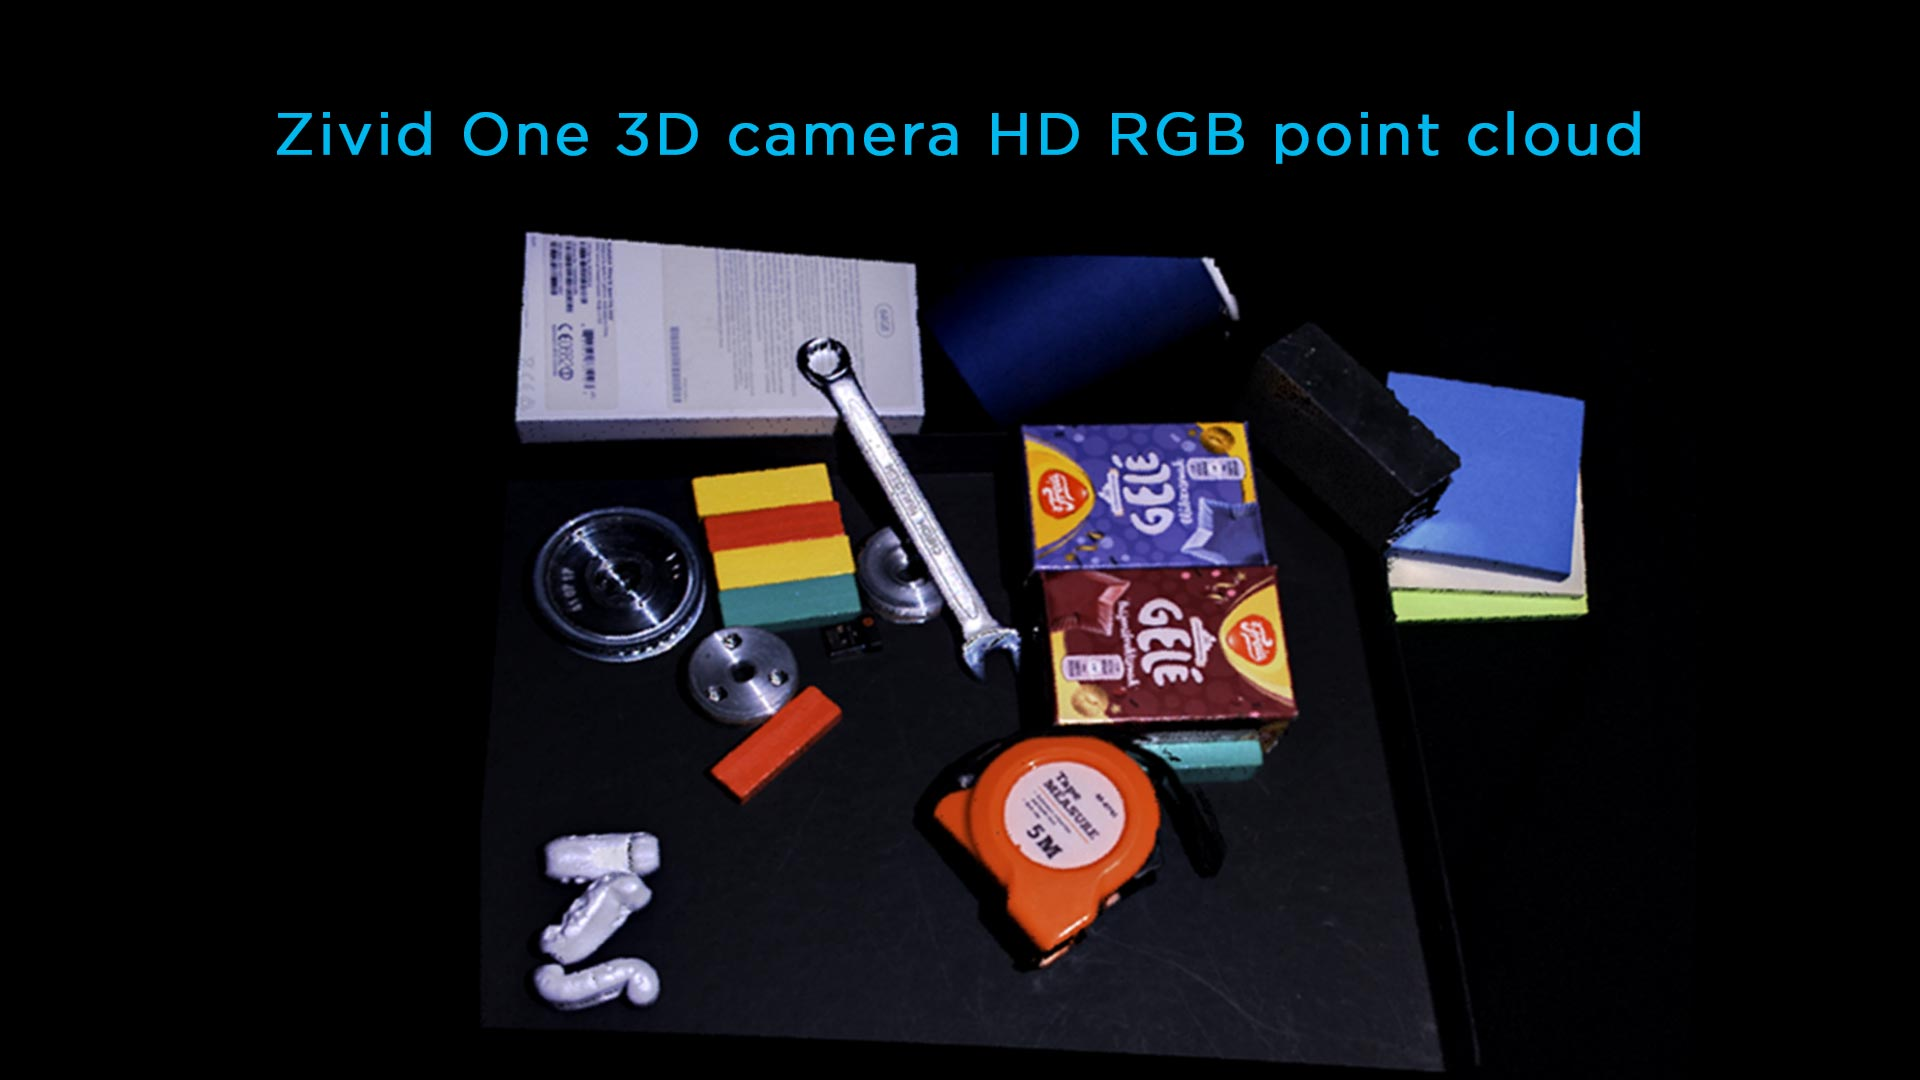 High definition color 3D bin-picking objects